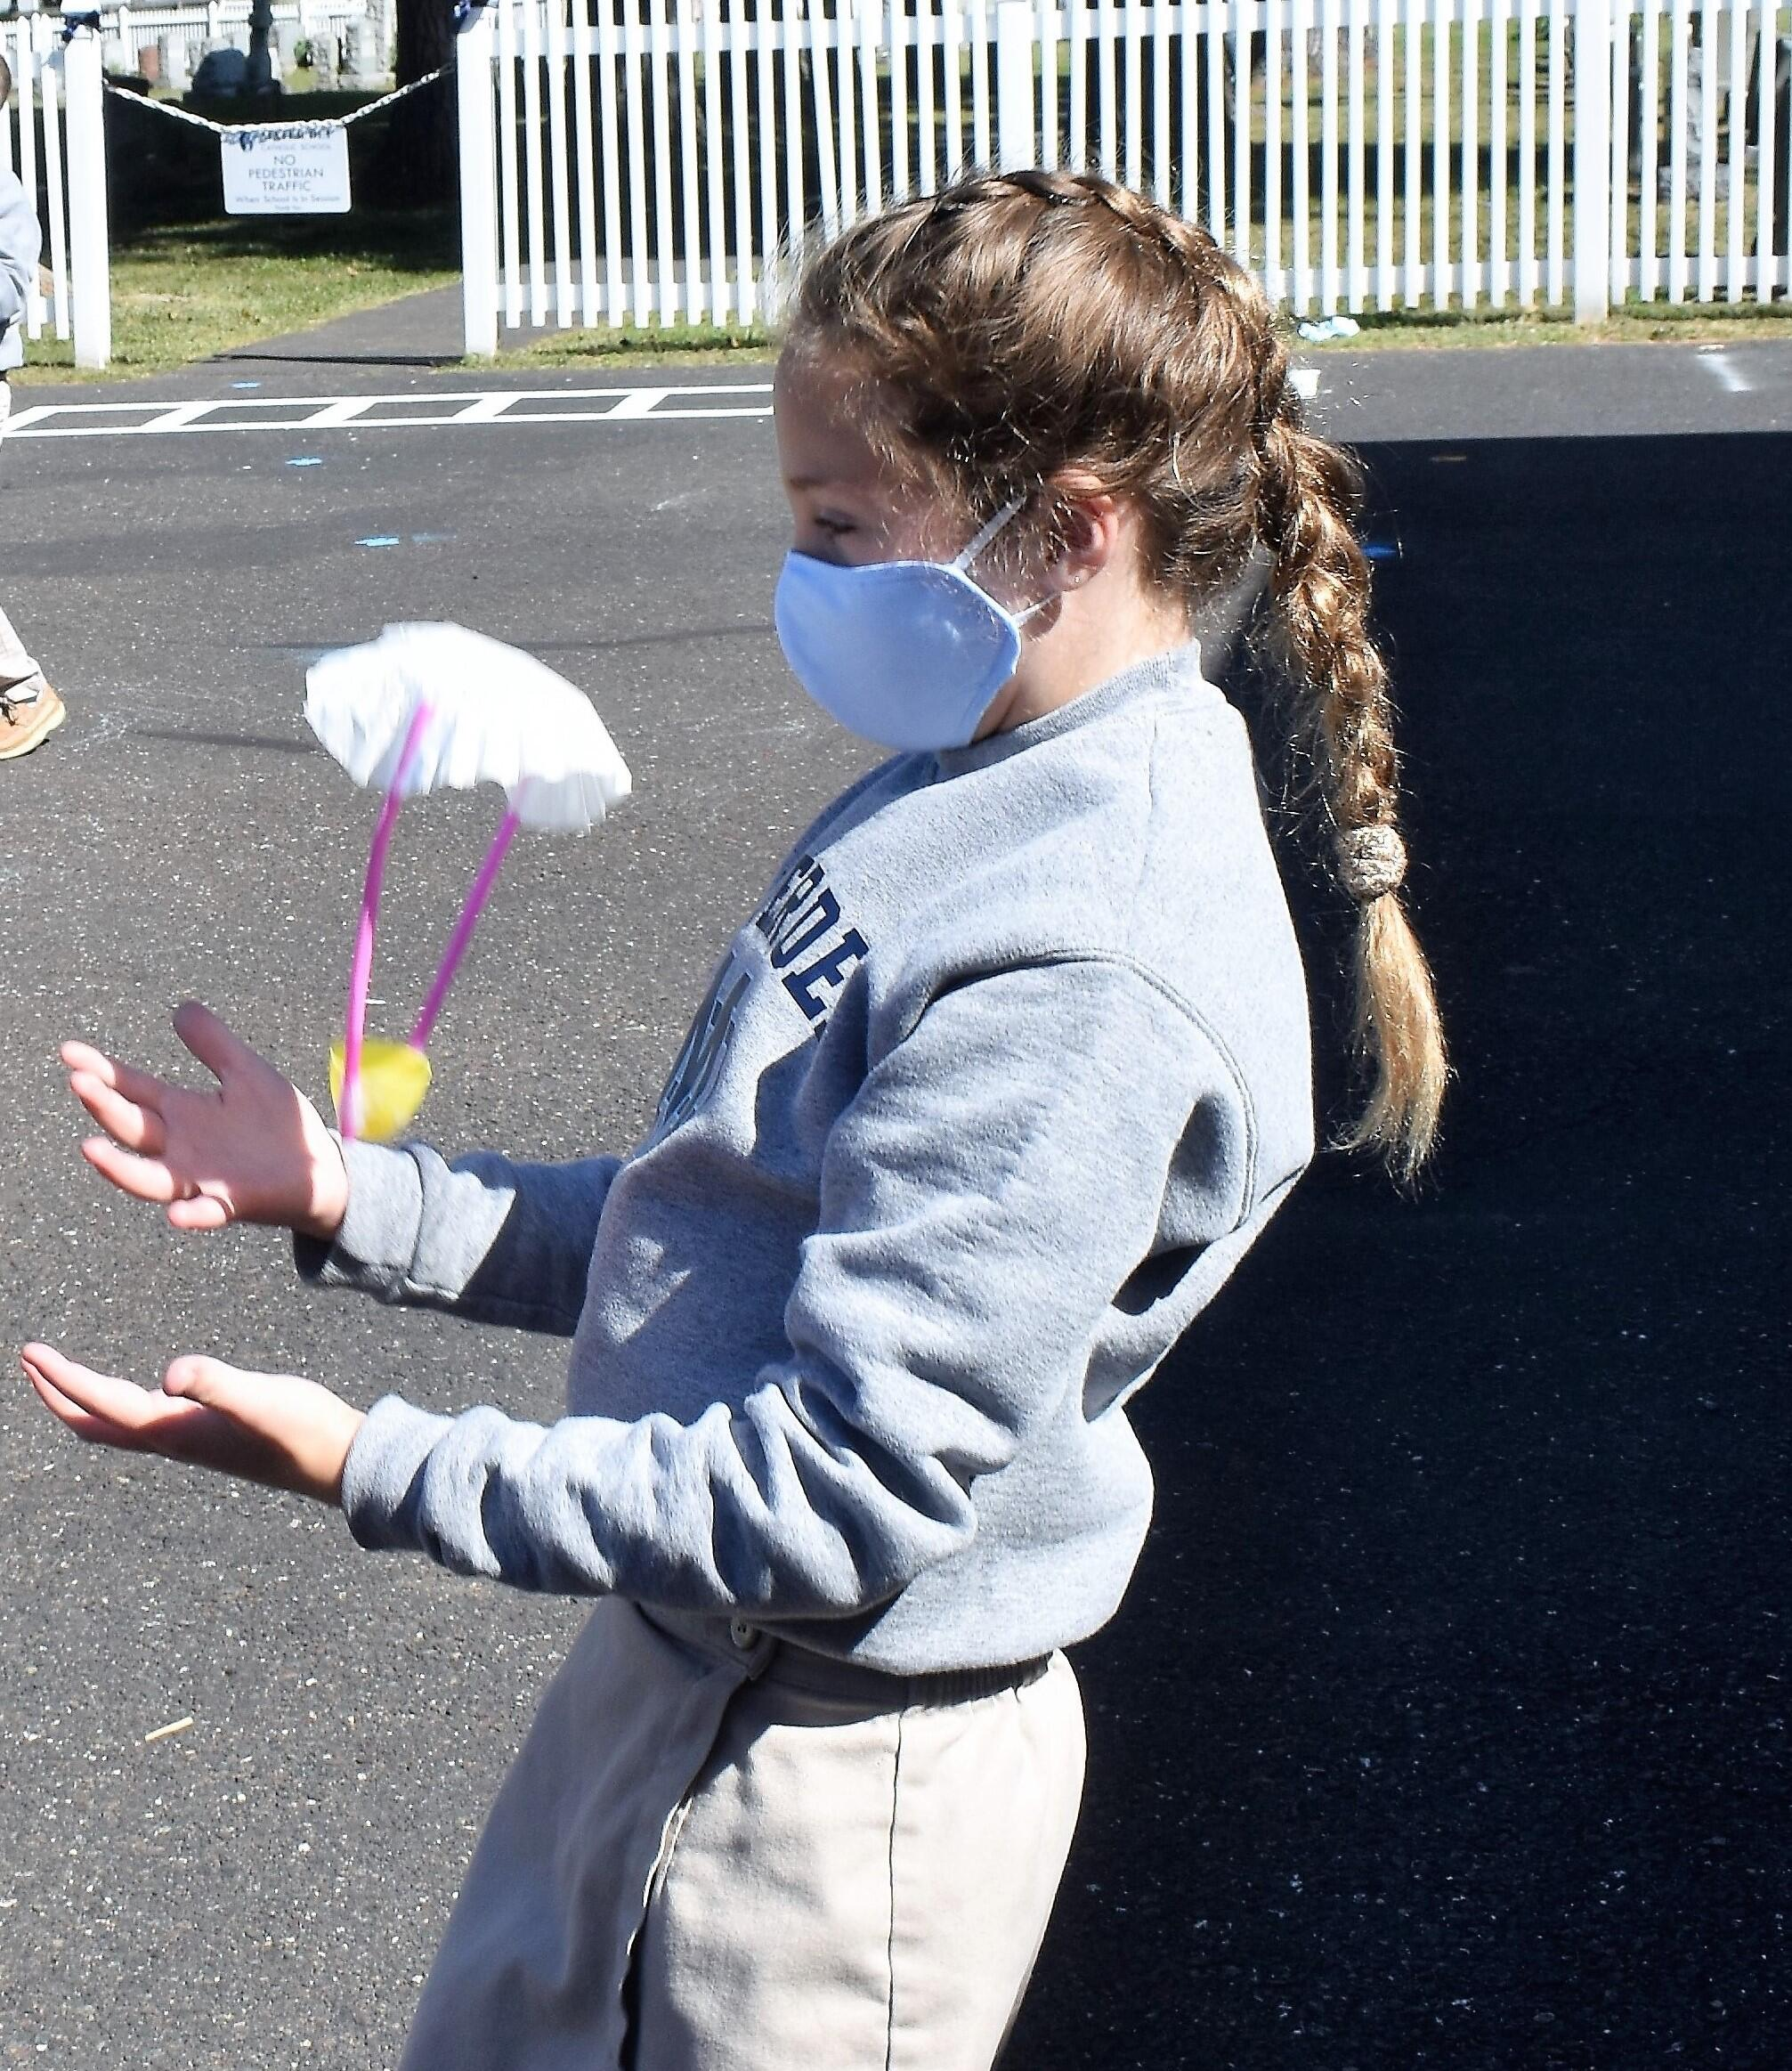 Second graders build heart mountains to withstand a breath wind.